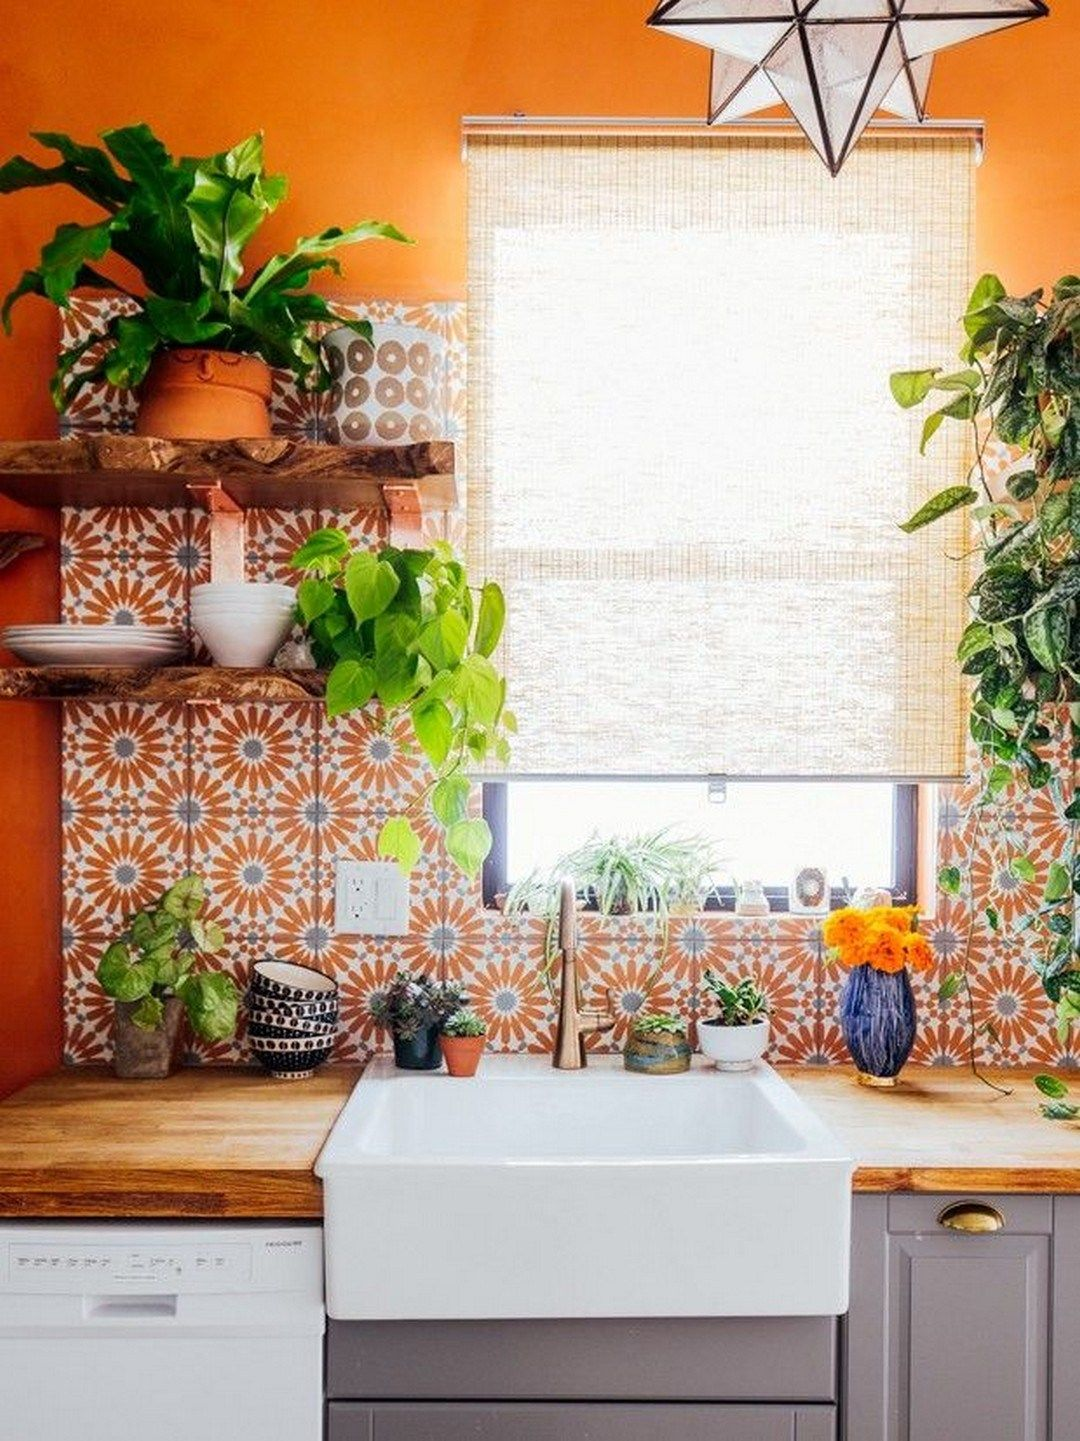 - Good Ideas For Colorful Kitchen Backsplash (With Images) Boho